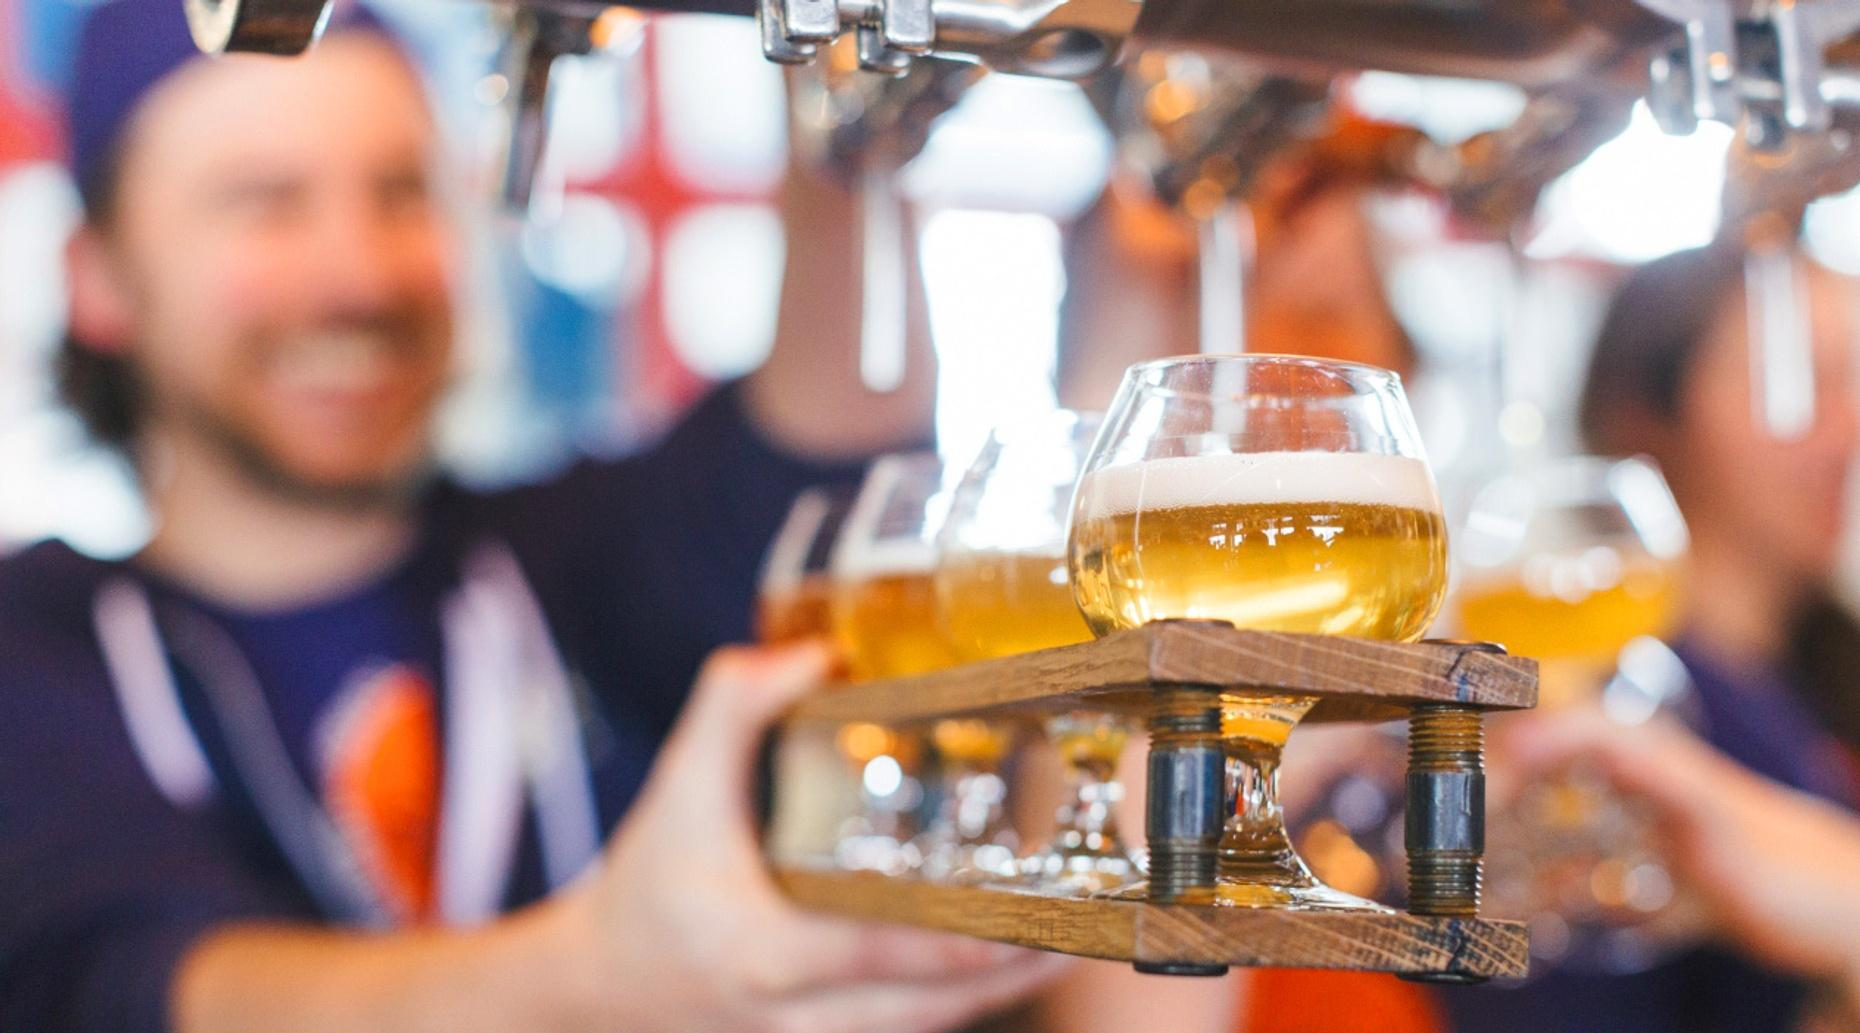 Guided Tour to Craft Breweries in New Braunfels